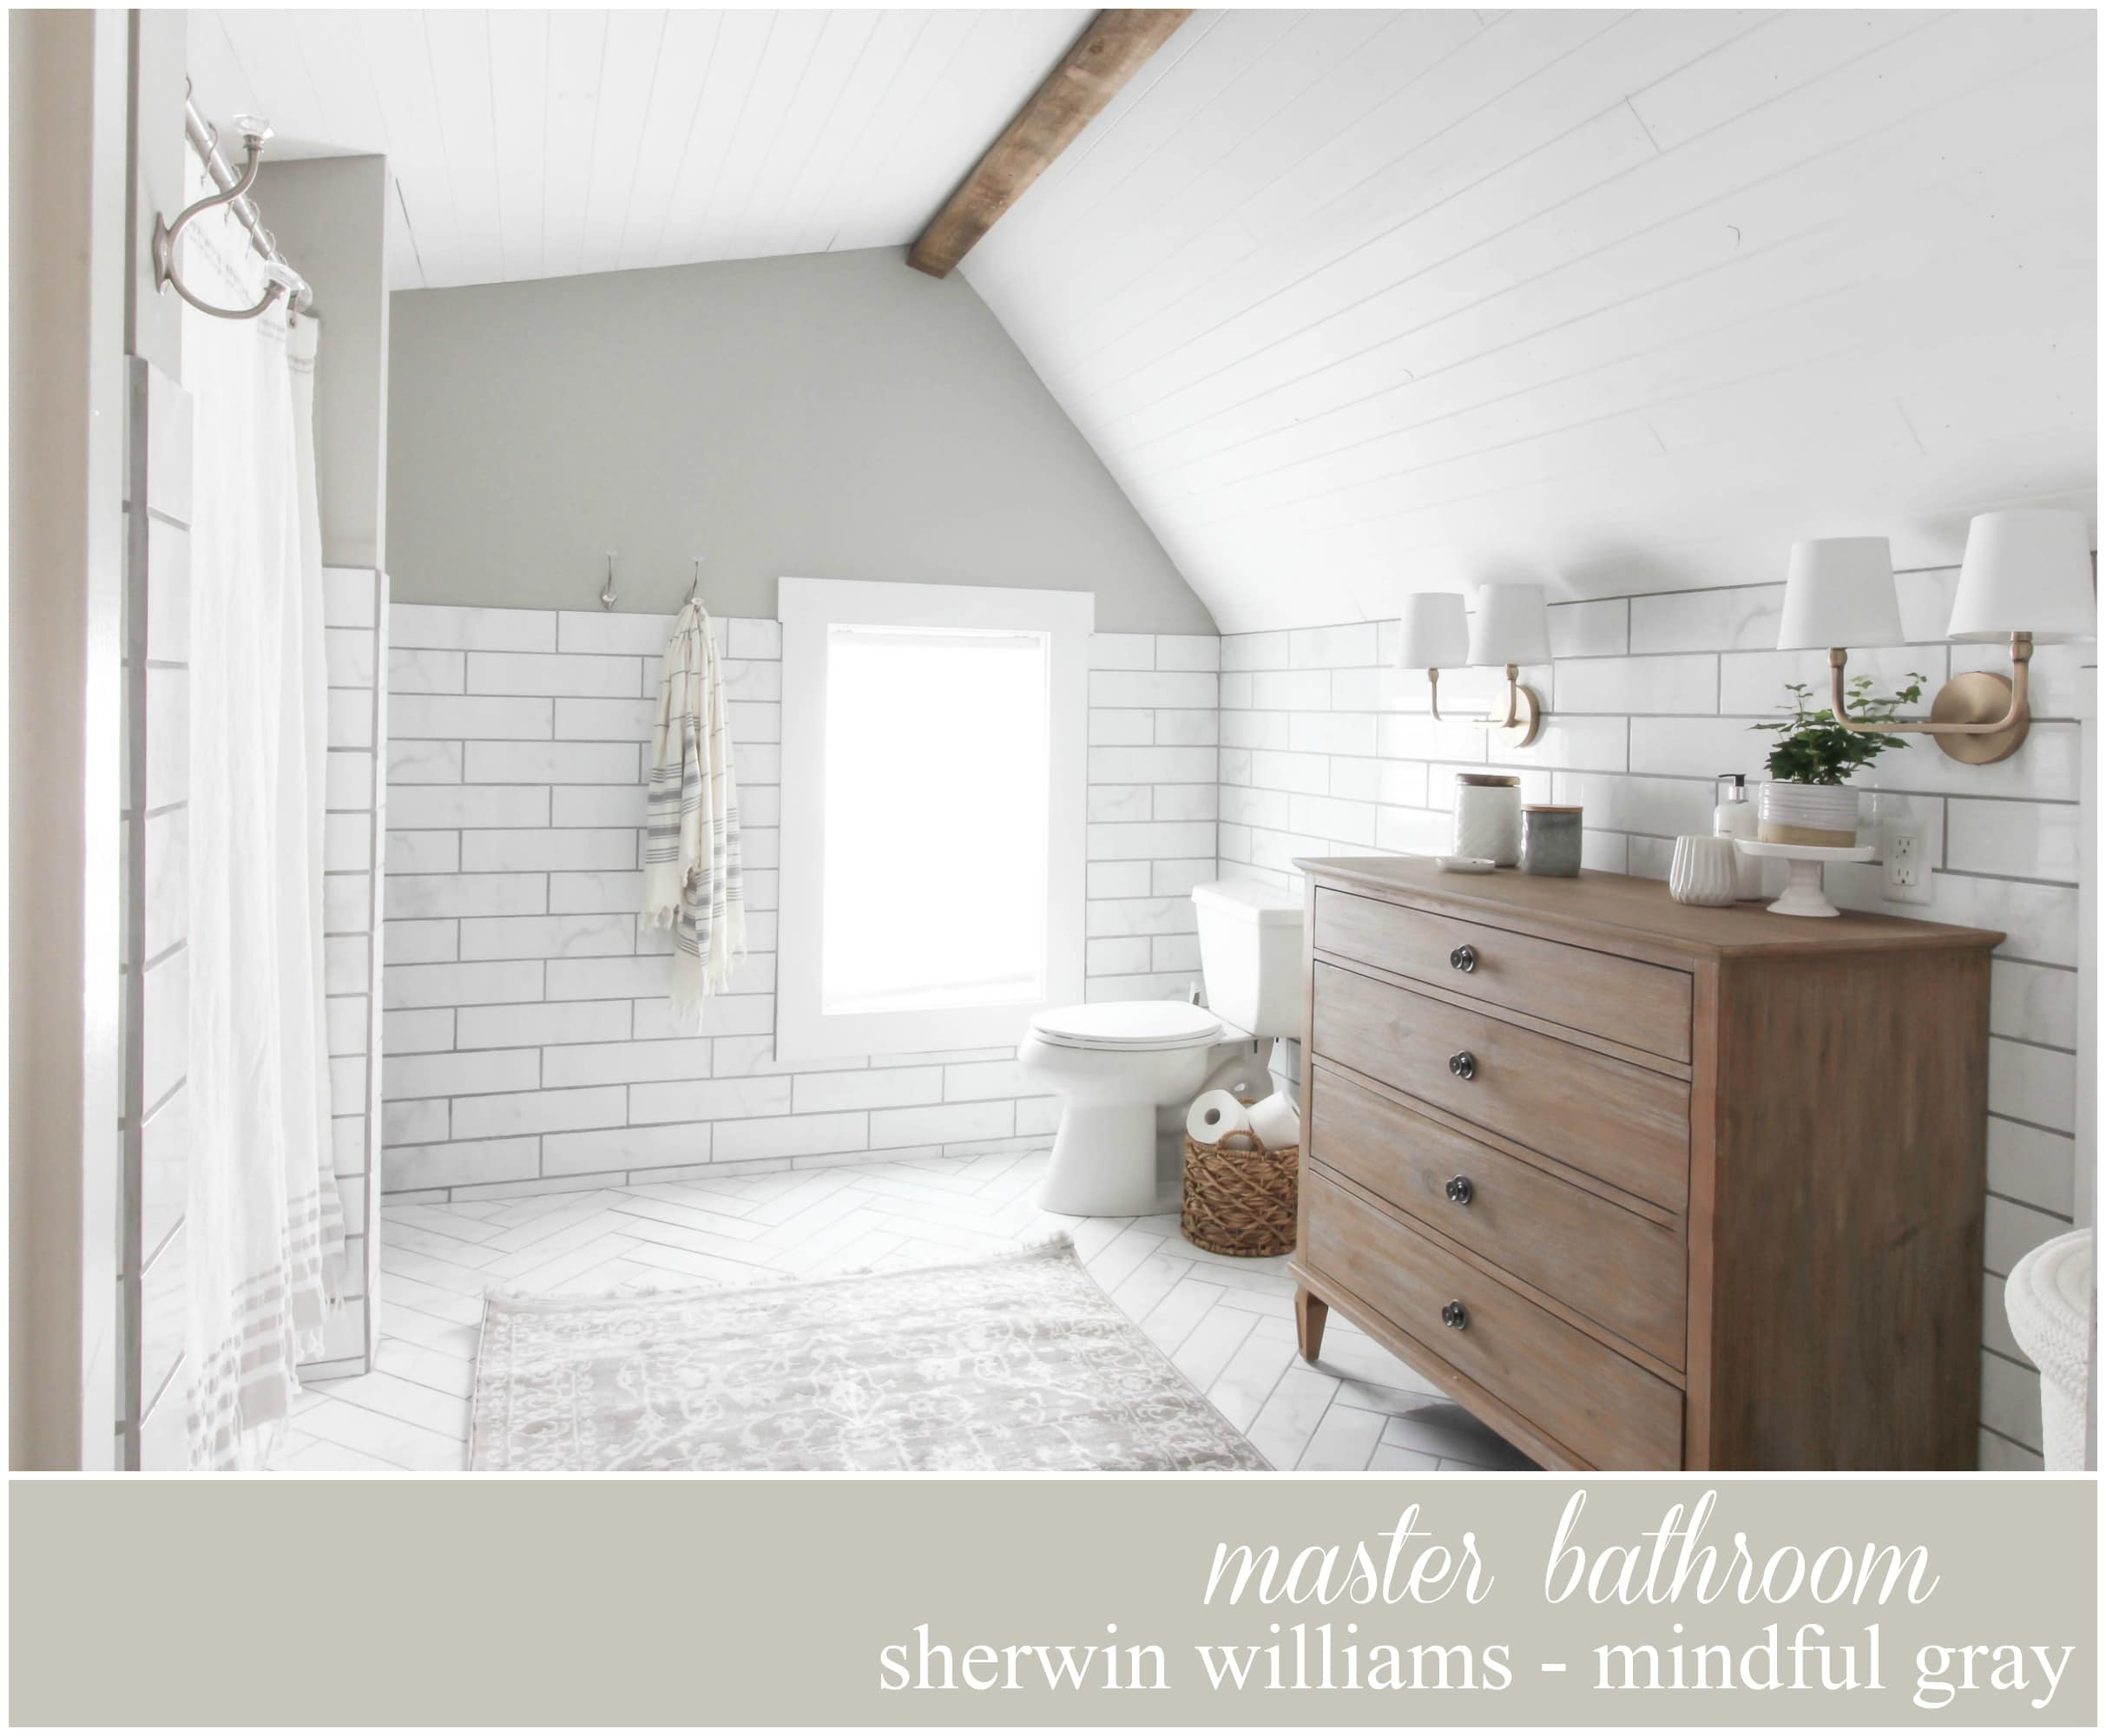 Sherwin Williams Paint color Mindful Gray